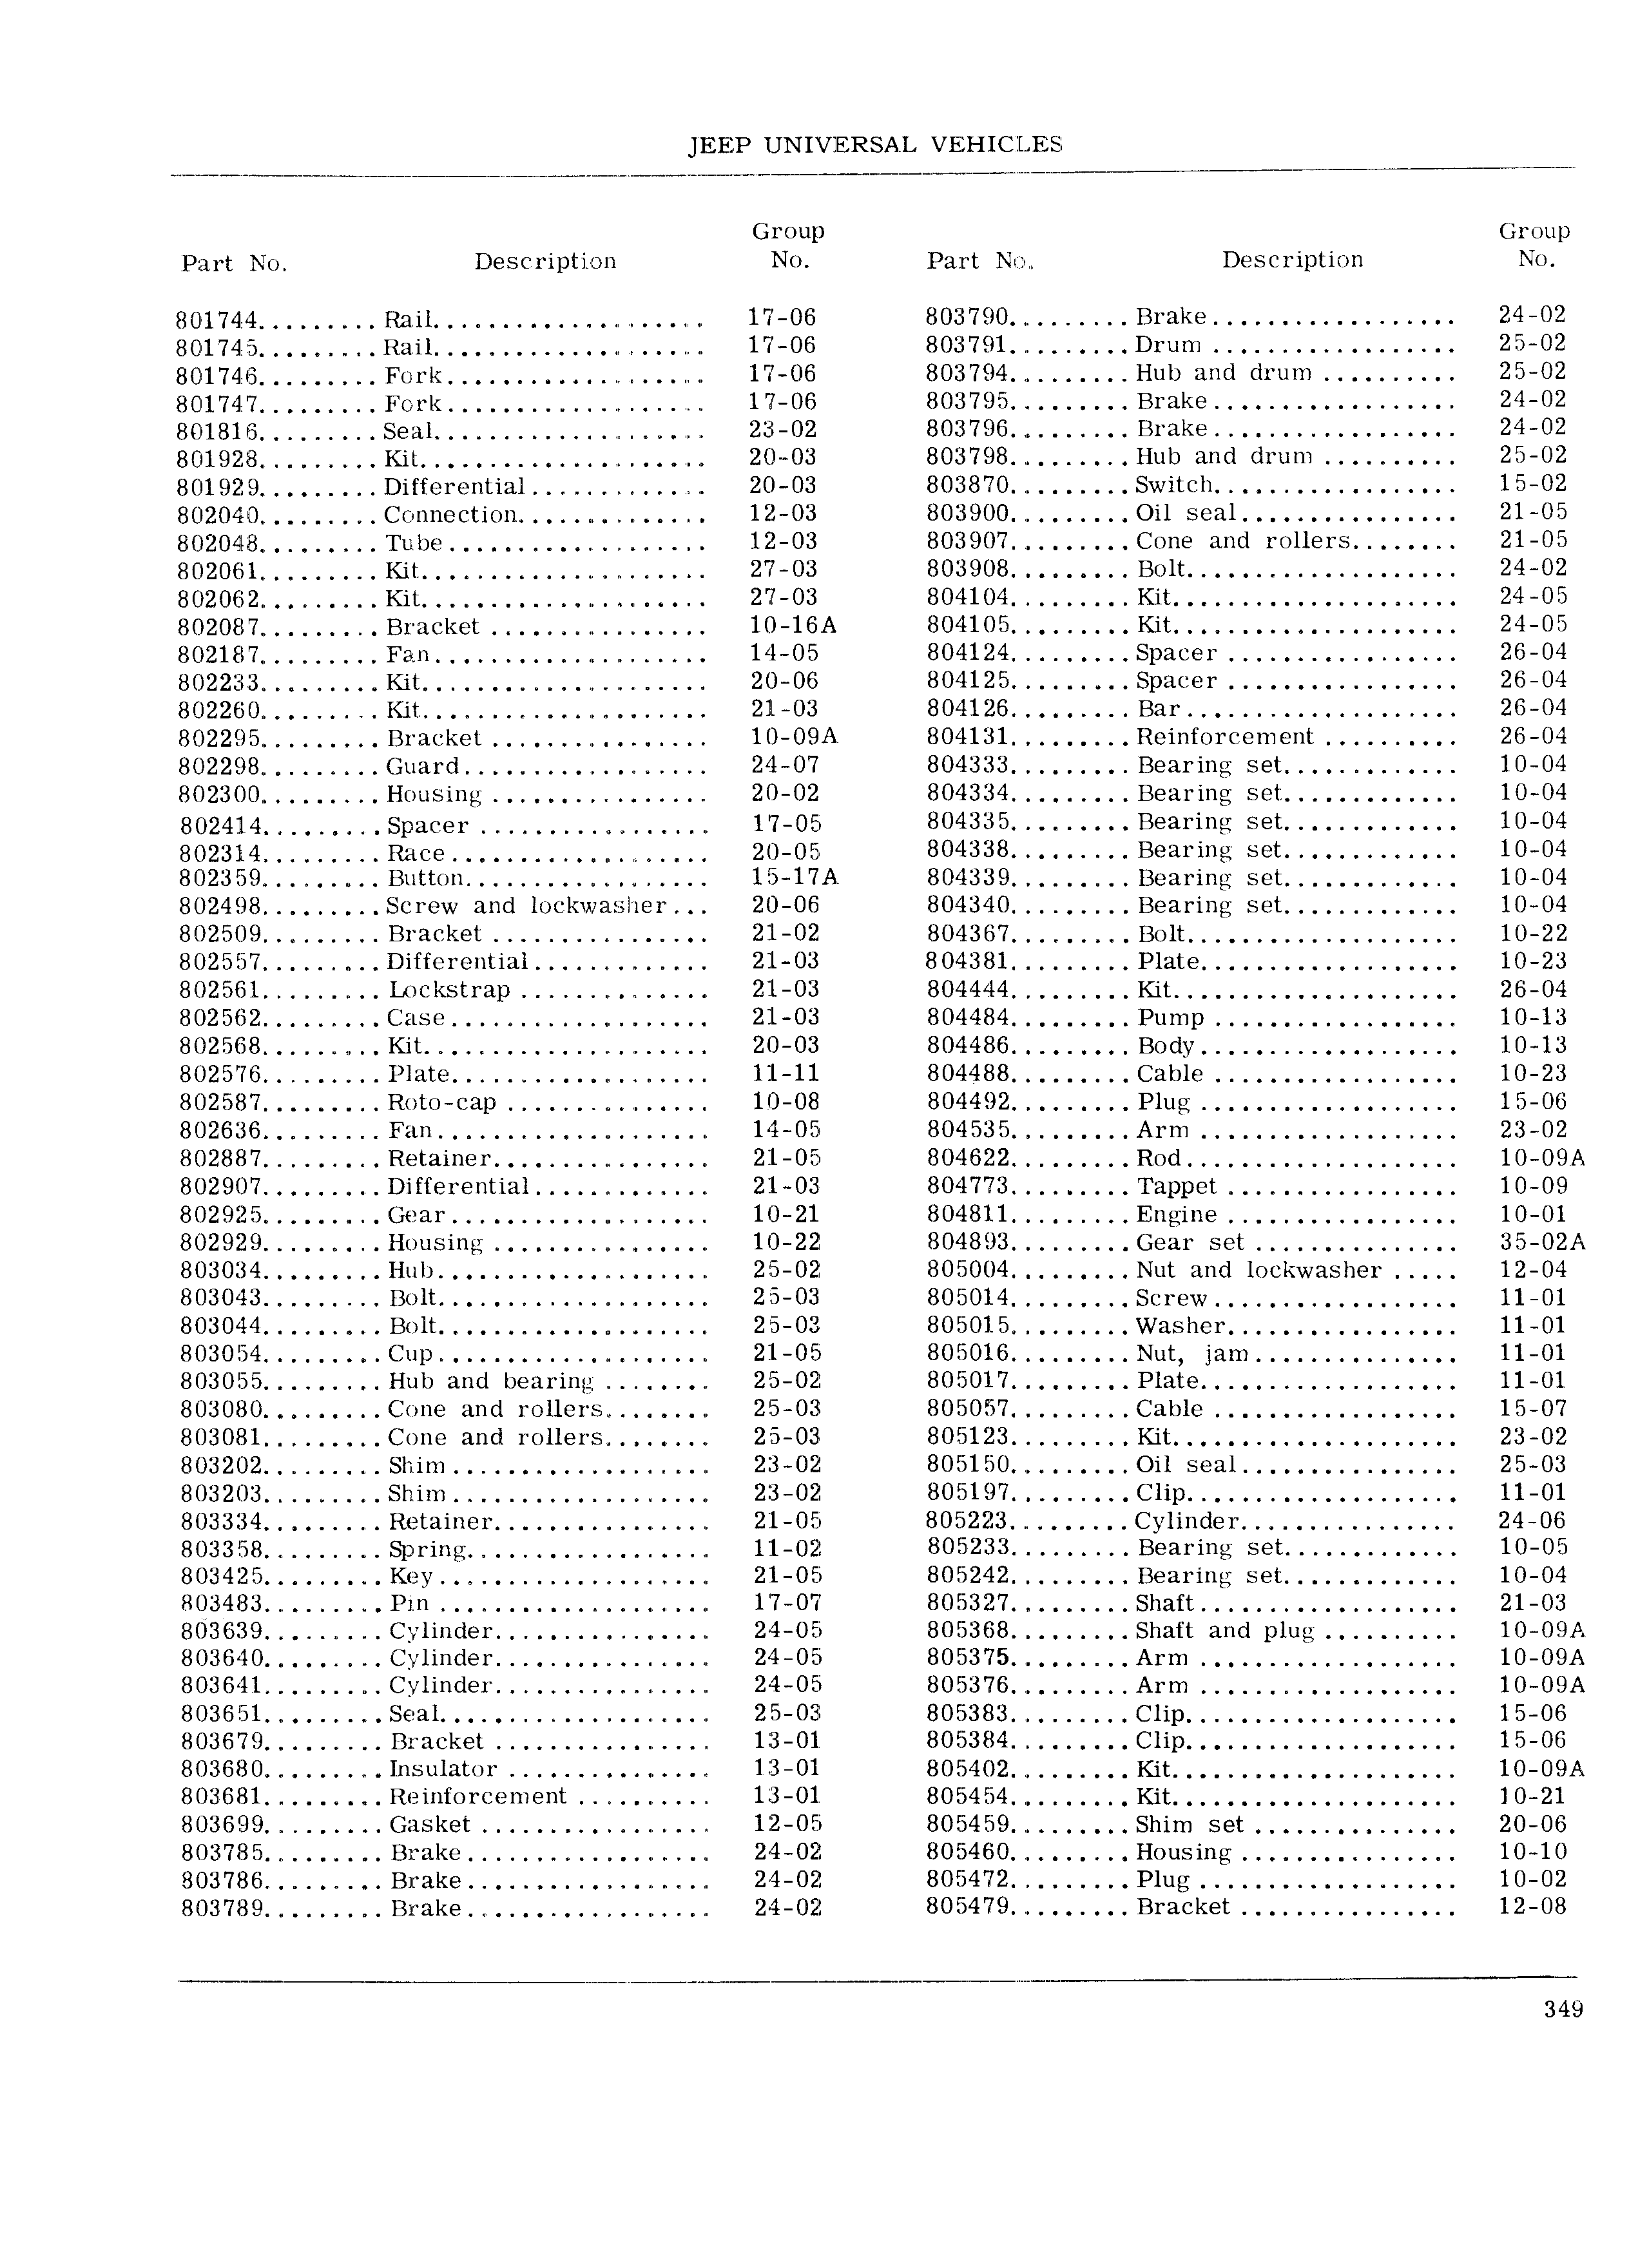 Jeep Universal Parts List December 1967